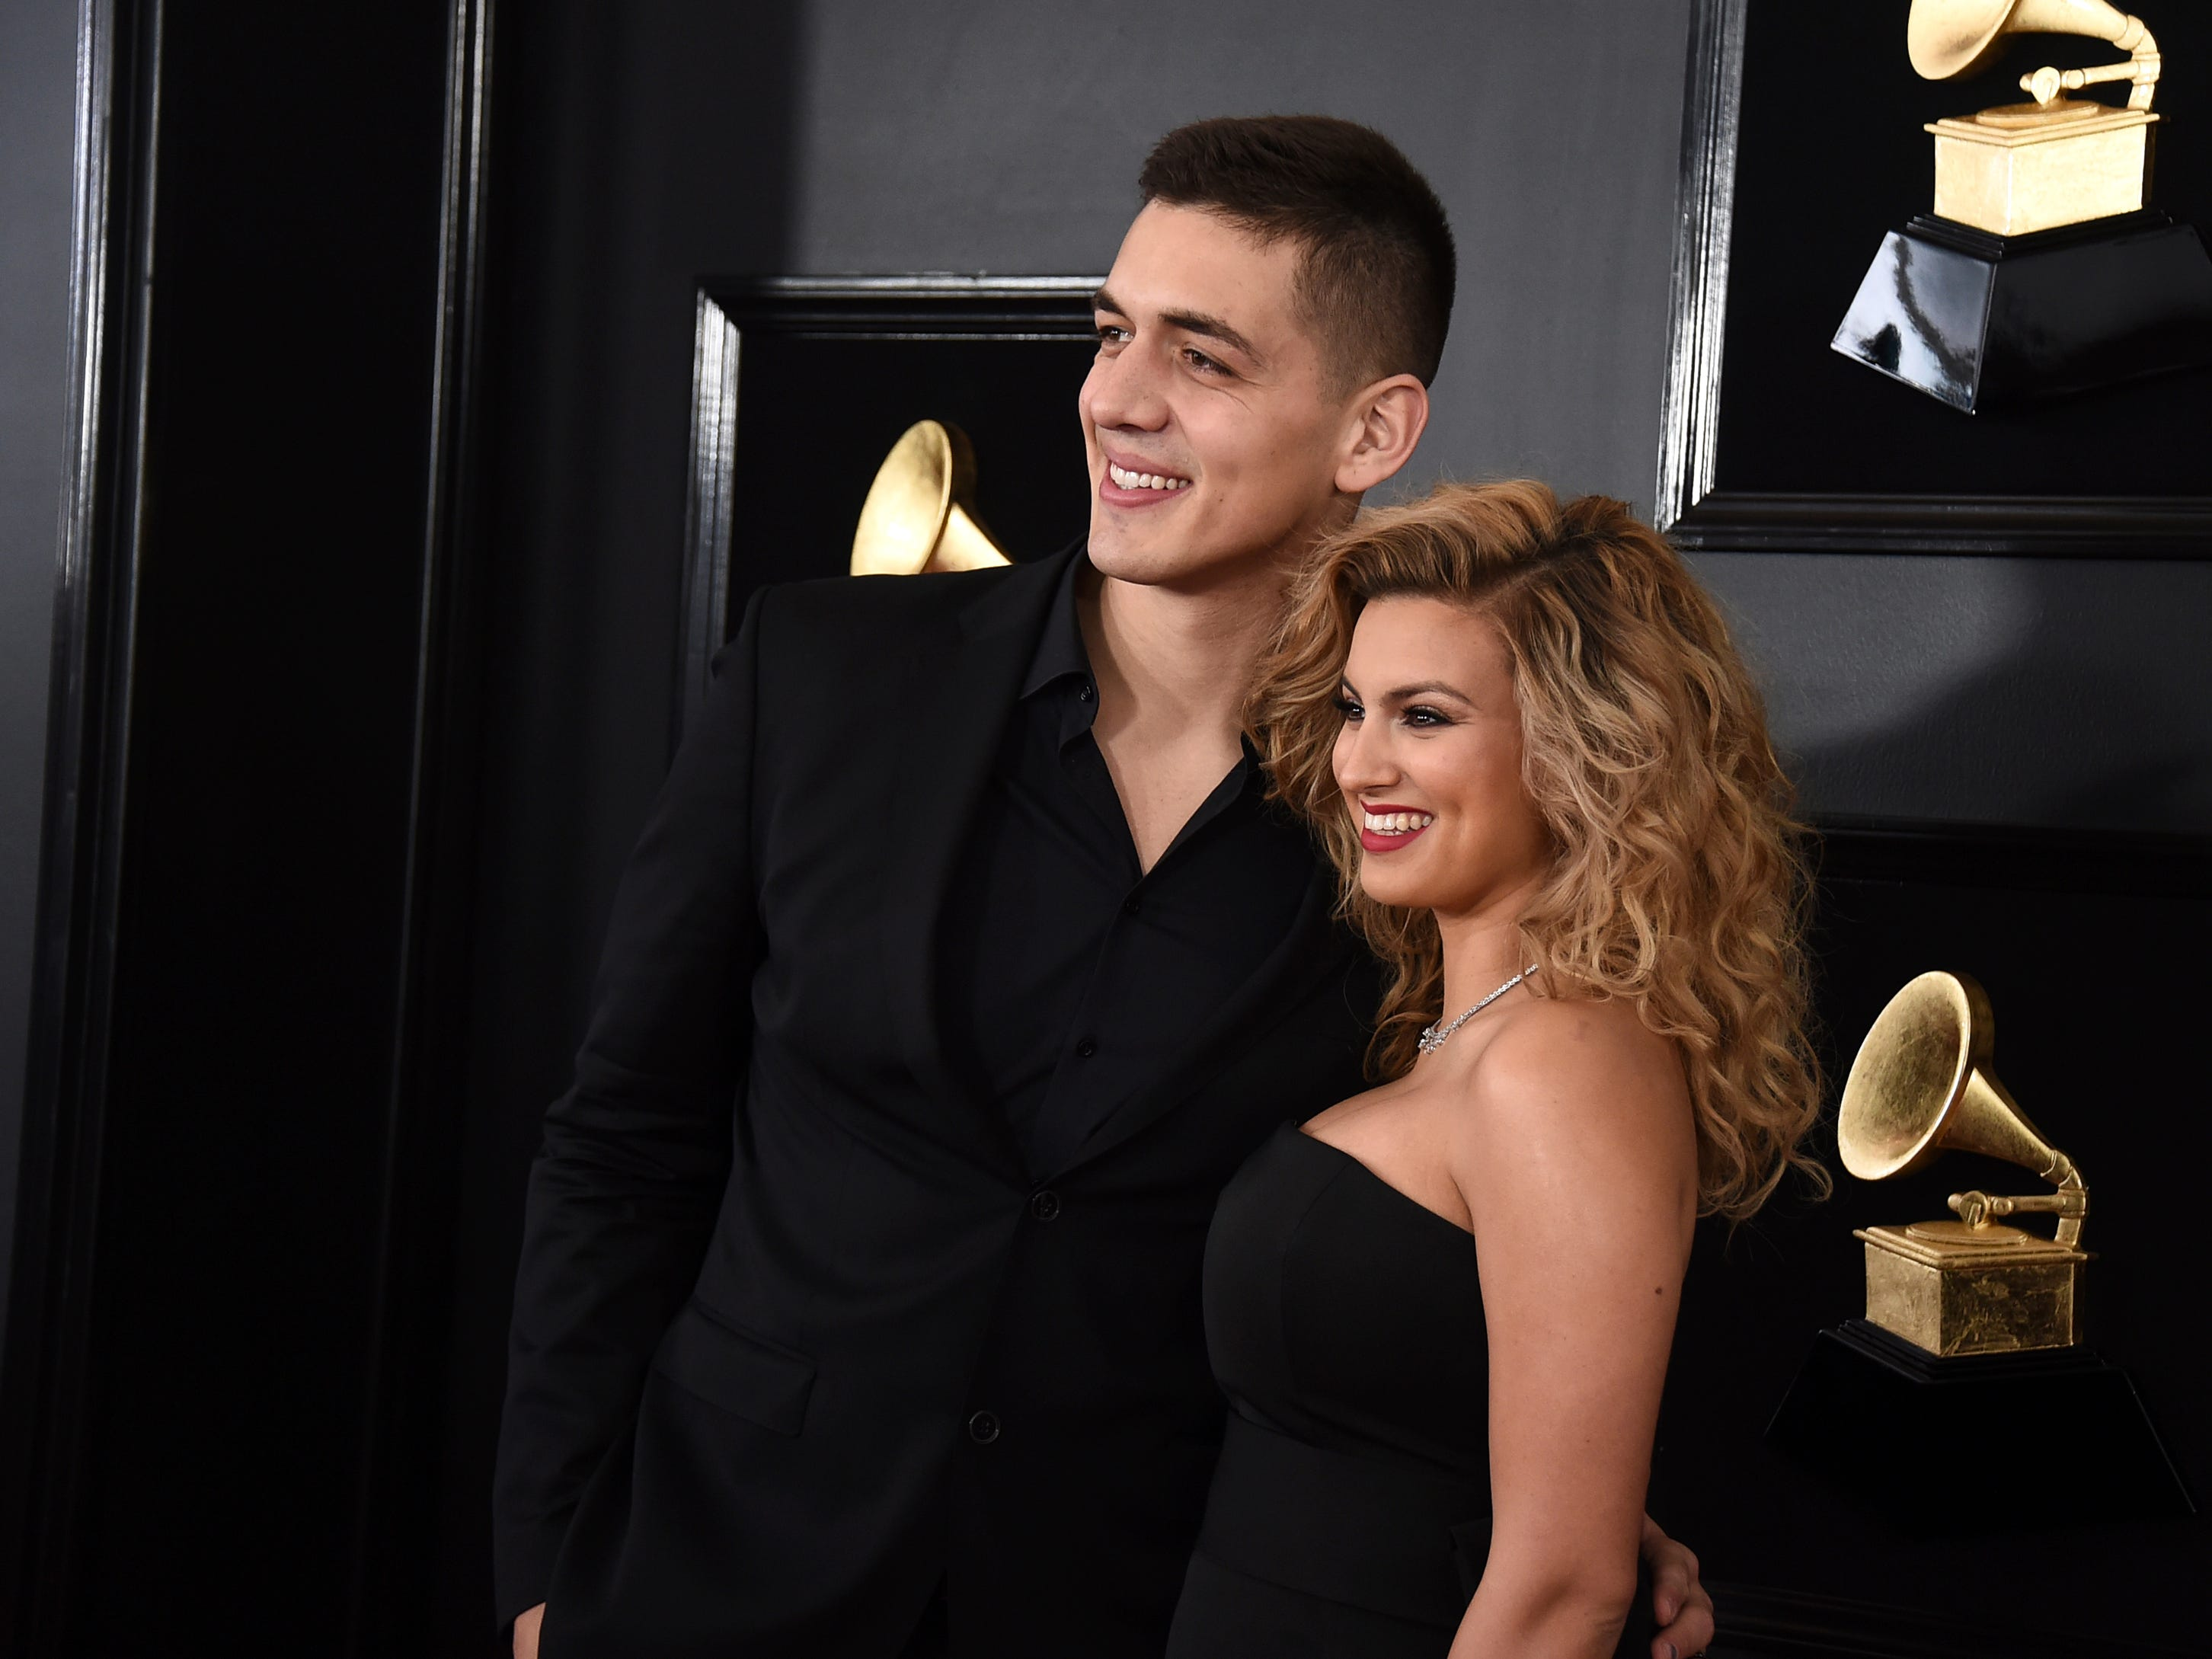 Andre Murillo, left, and Tori Kelly arrive at the 61st annual Grammy Awards at the Staples Center on Sunday, Feb. 10, 2019, in Los Angeles.